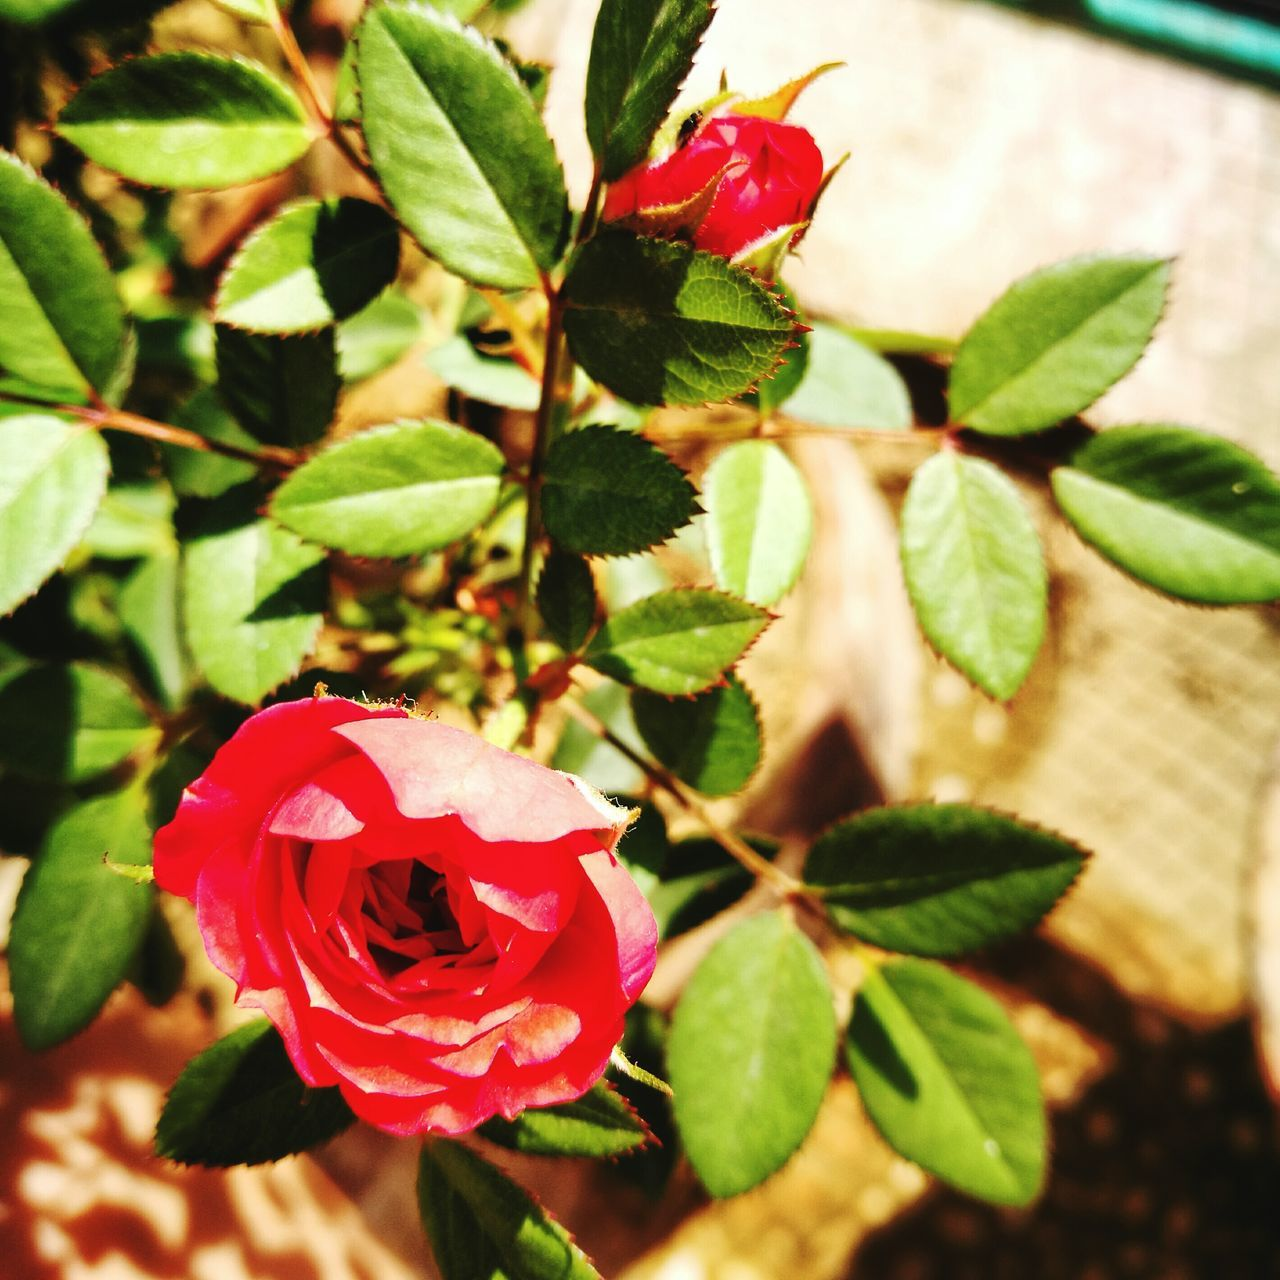 flower, petal, growth, nature, rose - flower, leaf, beauty in nature, plant, red, fragility, freshness, flower head, no people, close-up, blooming, day, outdoors, water